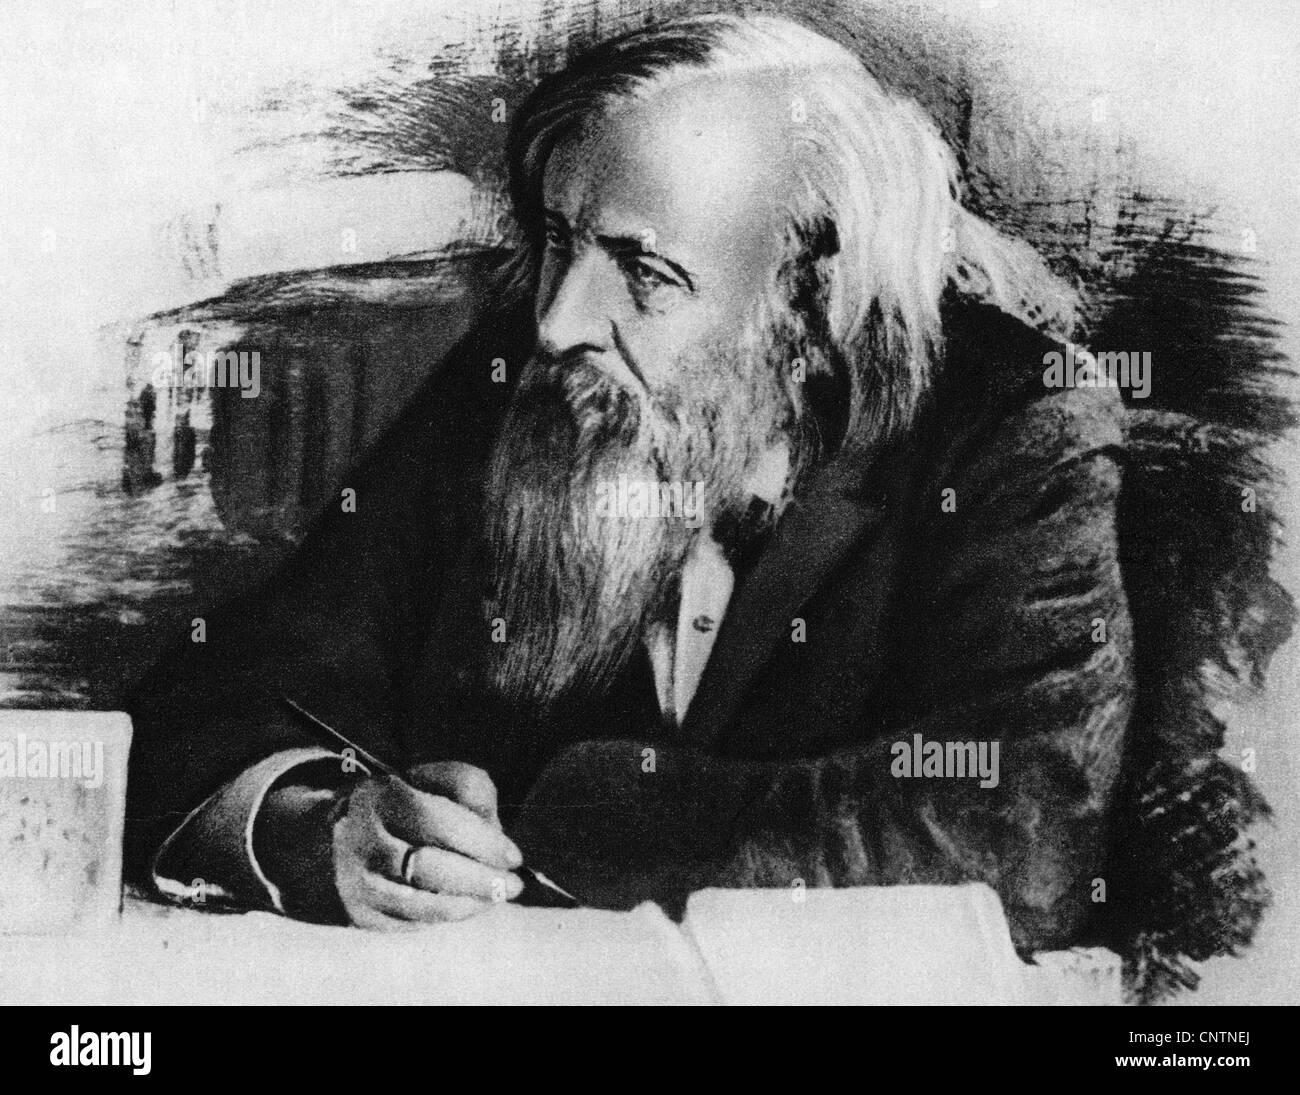 Mendeleev dmitri ivanovich 821834 221907 russian chemist mendeleev dmitri ivanovich 821834 221907 russian chemist inventor of the periodic table of elements portrait drawin gamestrikefo Image collections